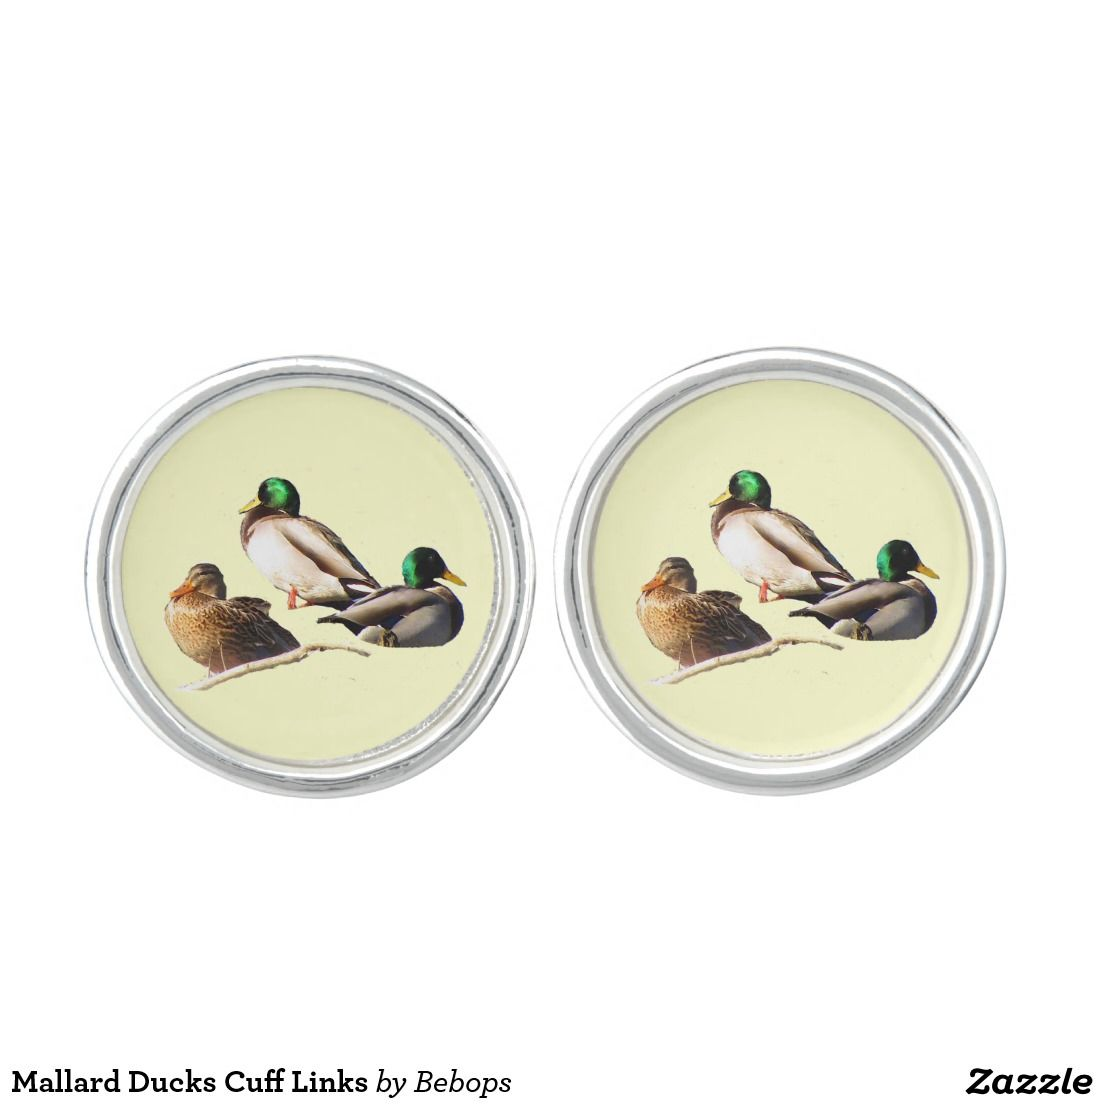 Mallard Ducks Cuff Links Cufflinks